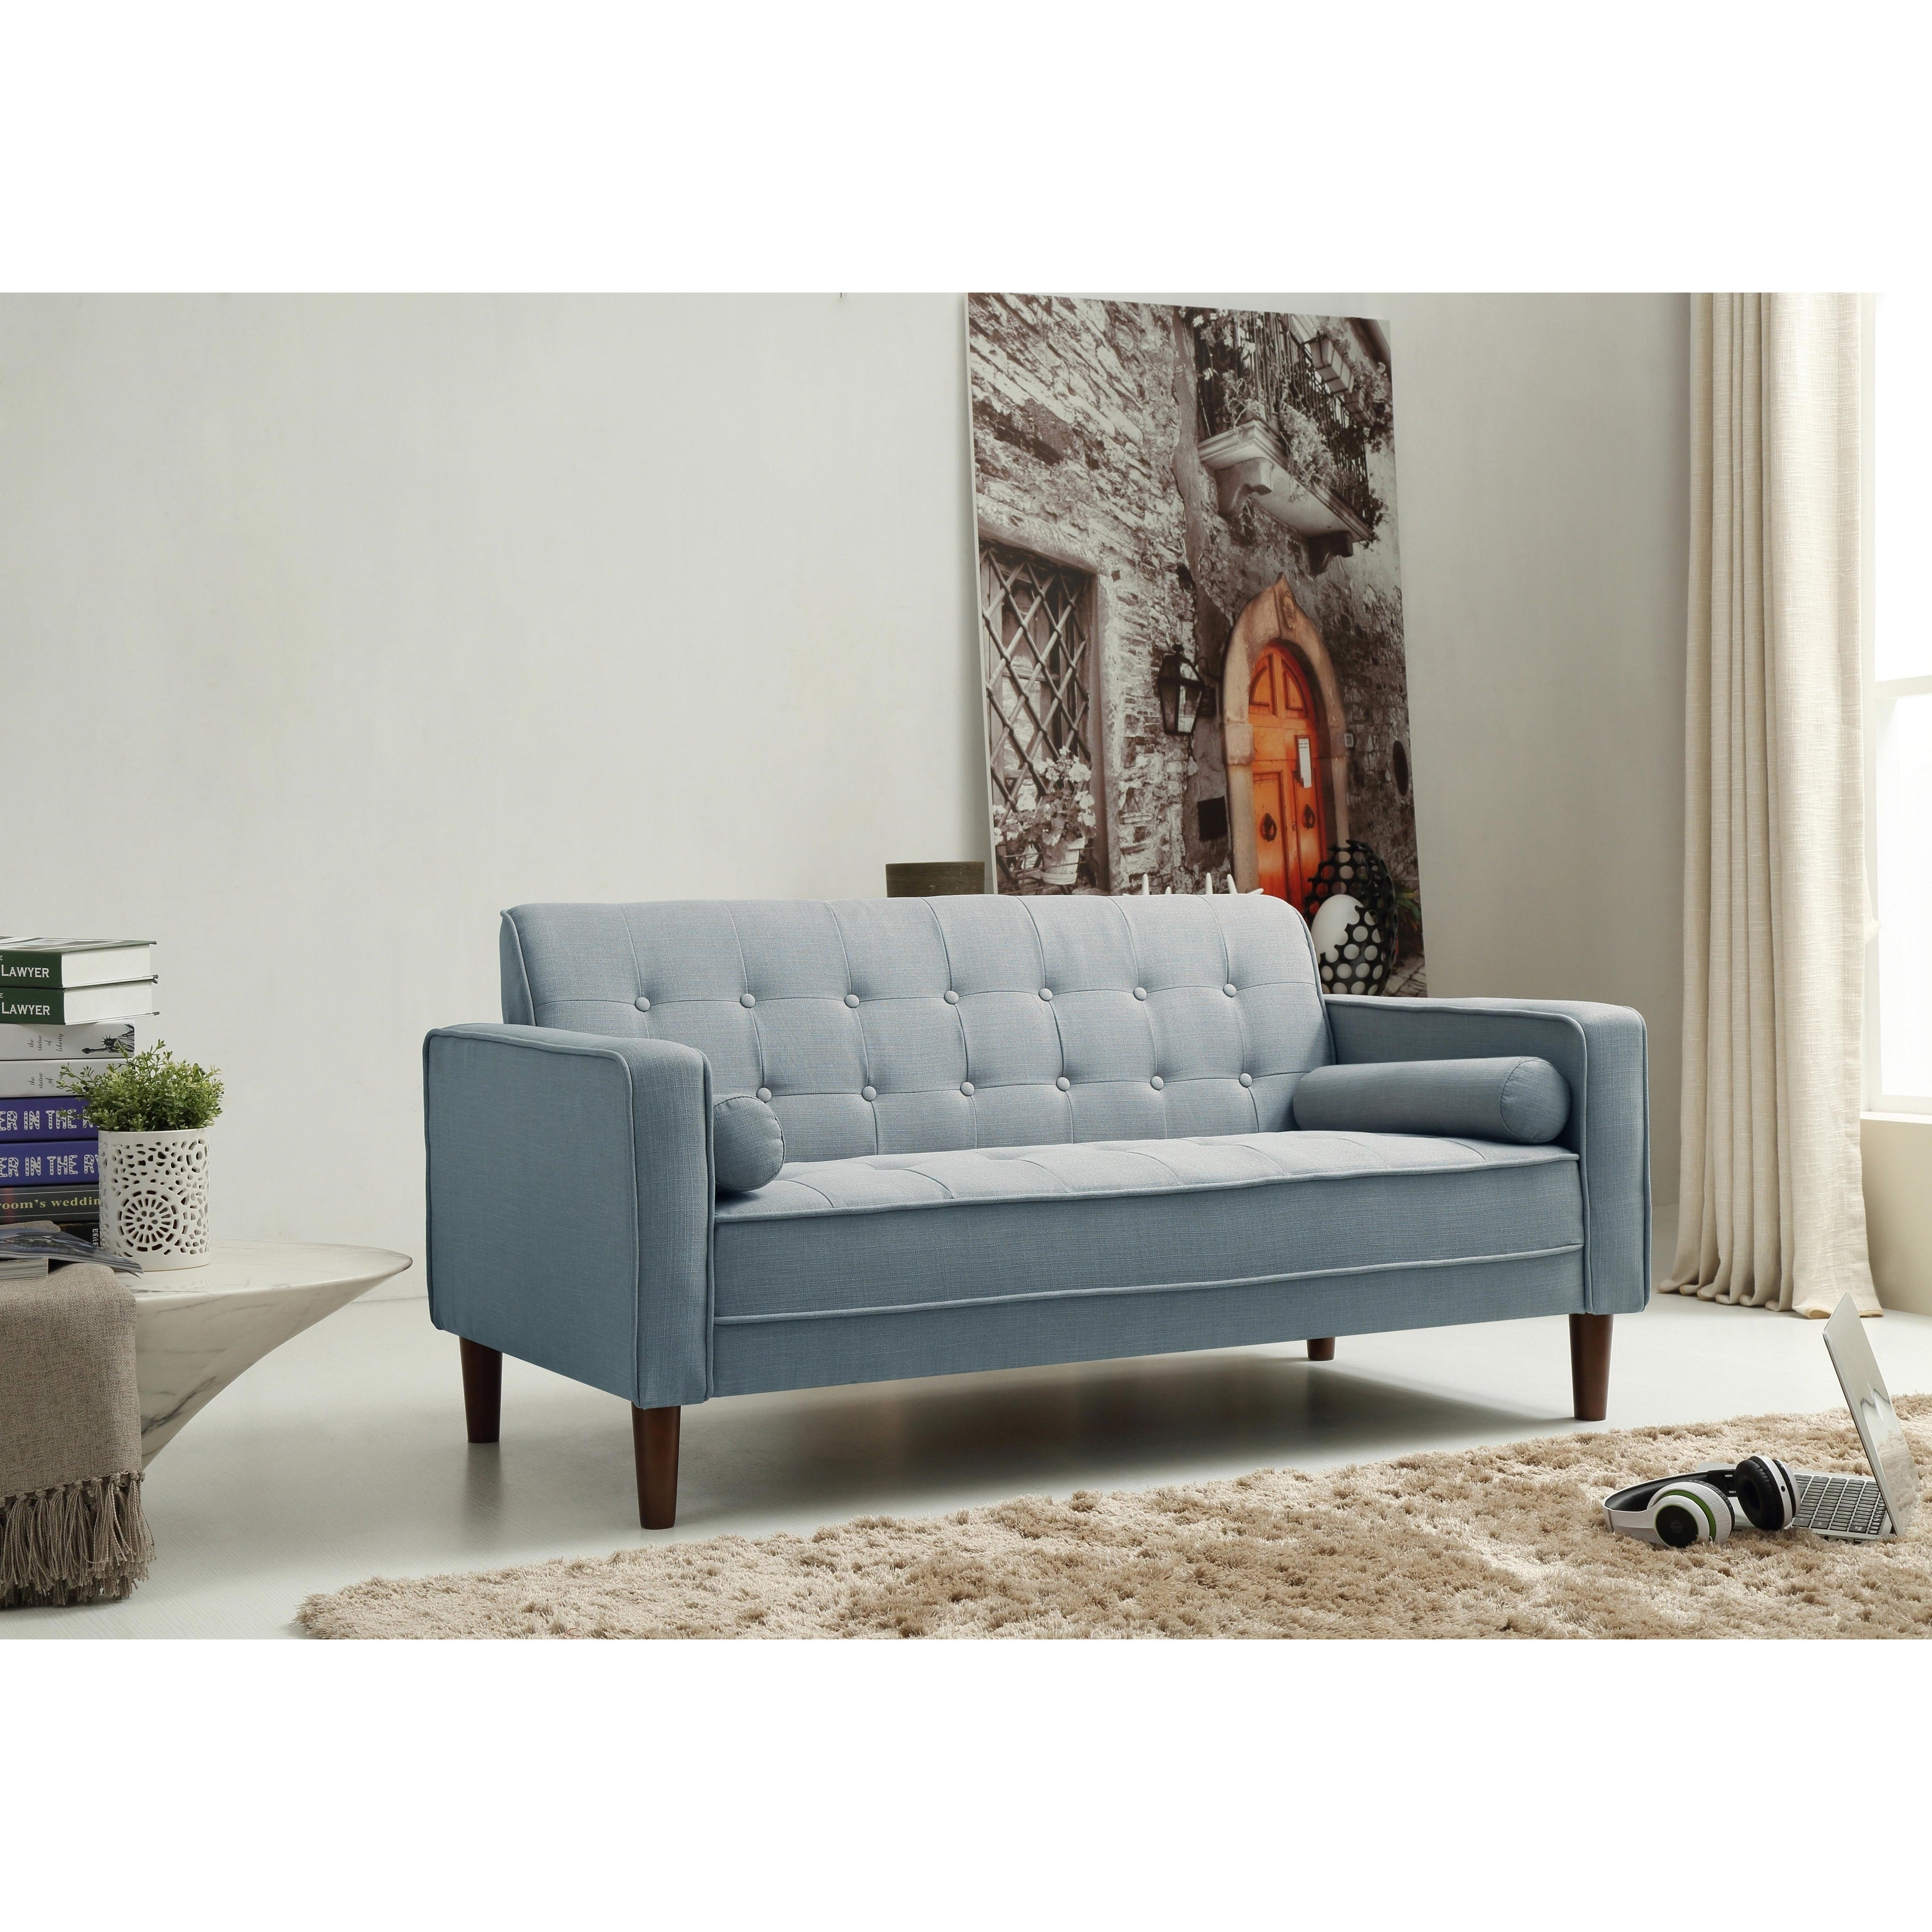 Beau Shop Nathaniel Home Nolan Tufted Blue Linen Sofa   On Sale   Free Shipping  Today   Overstock.com   12443176